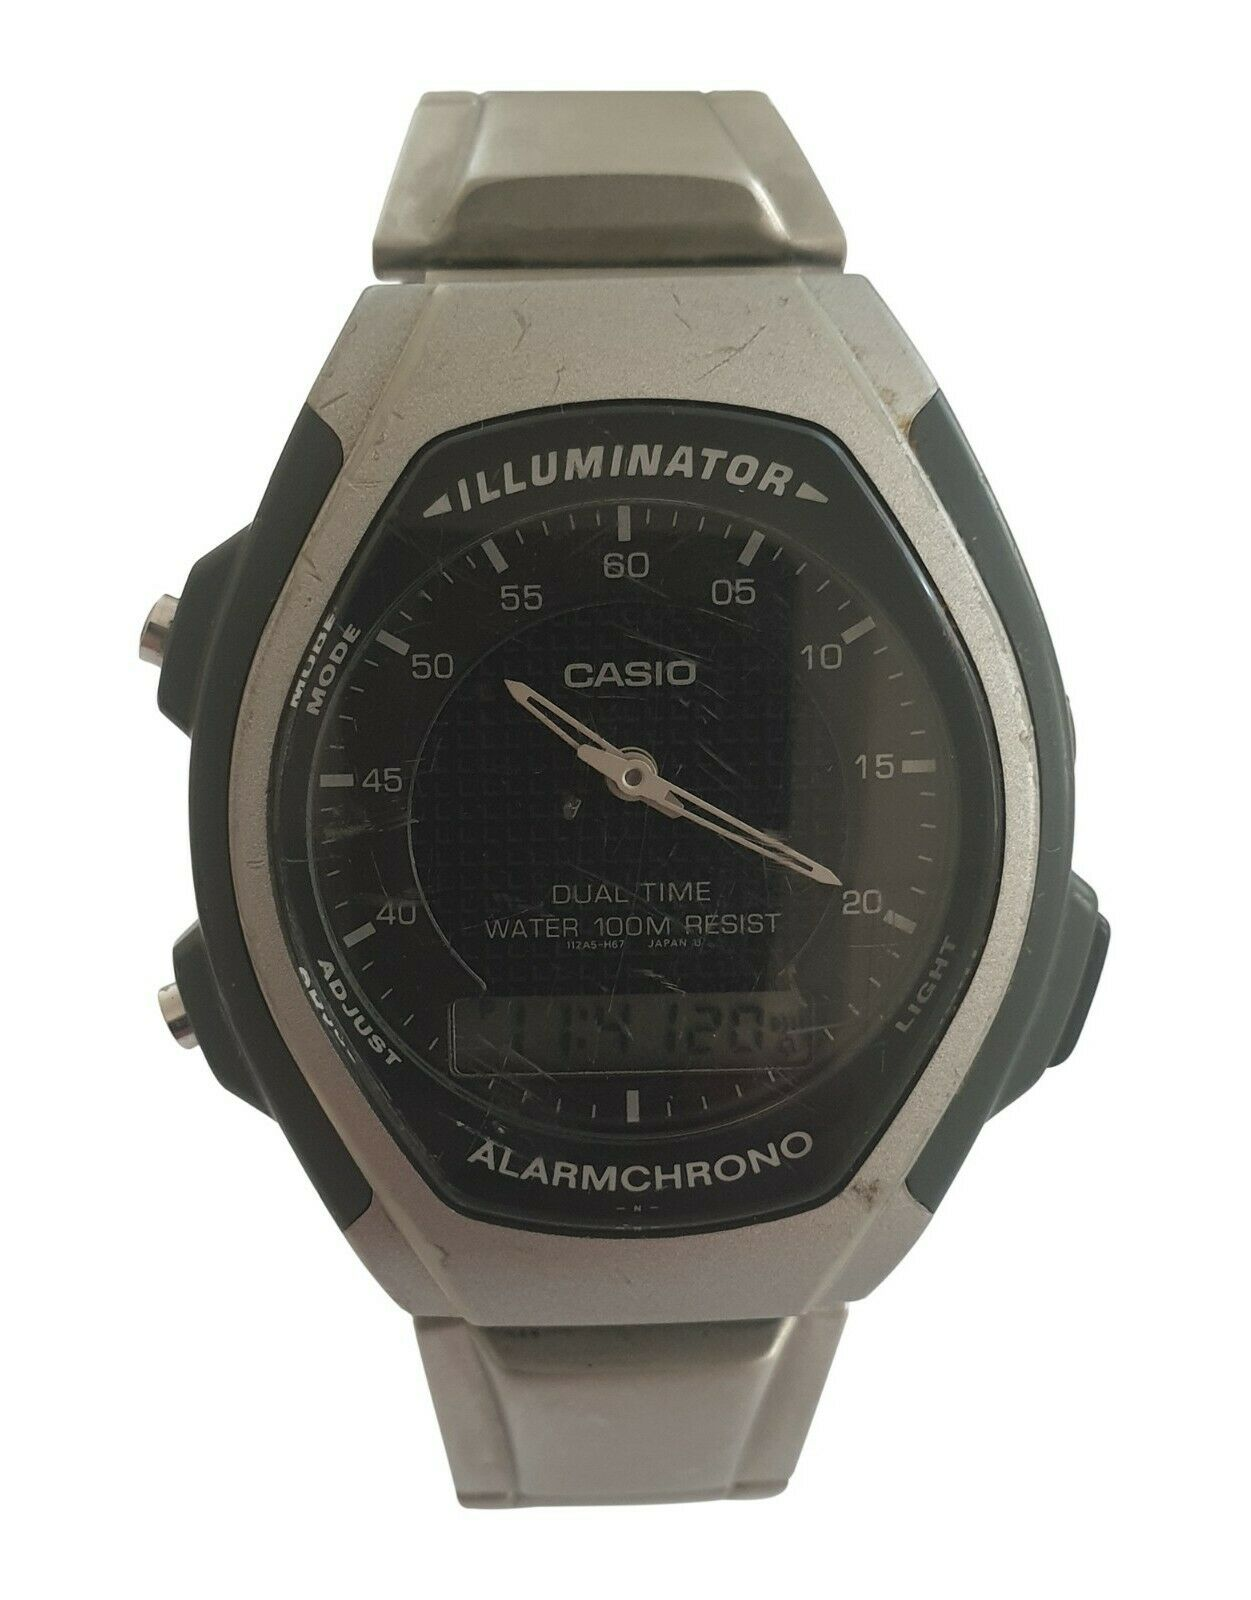 Image 1 - Casio Watch Dual Time 100M Illuminator Alarmchrono Watch AQ-140W - Cased in Mala